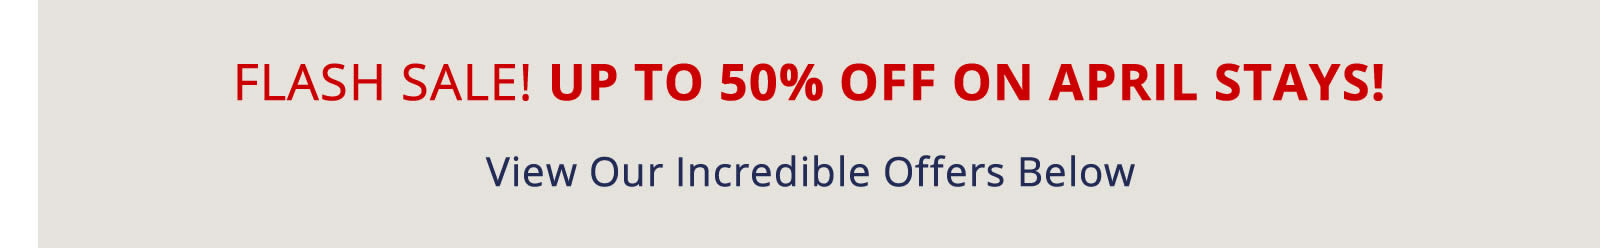 FLASH SALE! UP TO 50% OFF ON APRIL STAYS!